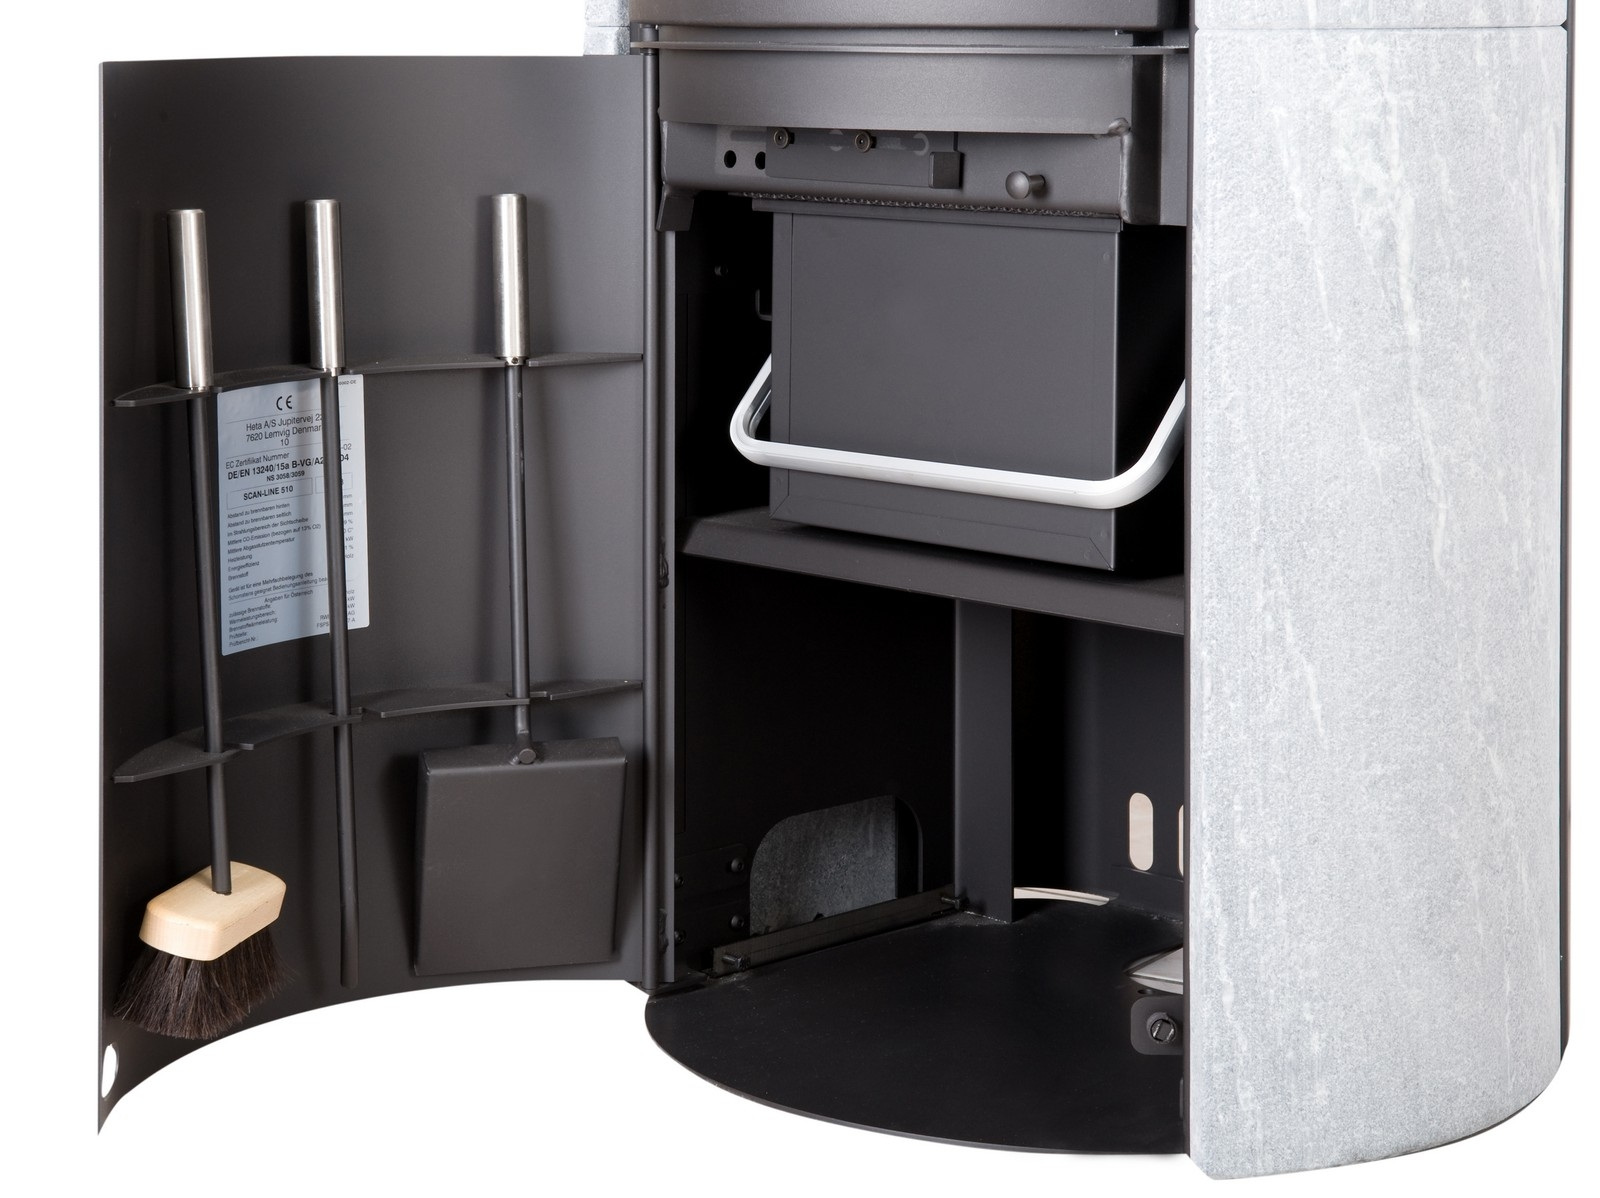 heta sl 820 ollaire r f chauffage po les bois. Black Bedroom Furniture Sets. Home Design Ideas